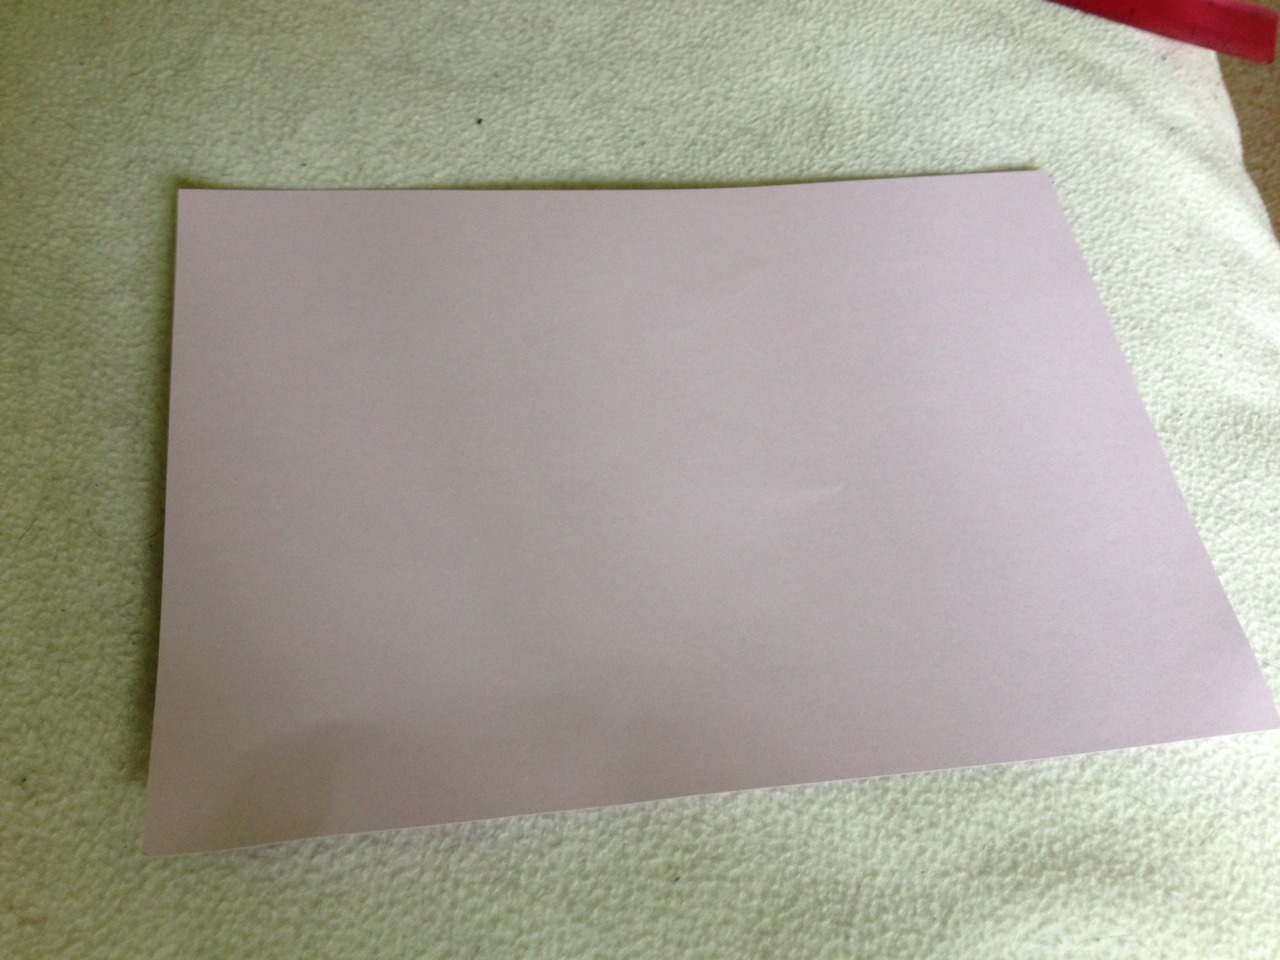 To make your card get a piece of card whatever size you want (as long as it fits in the envelope you made)